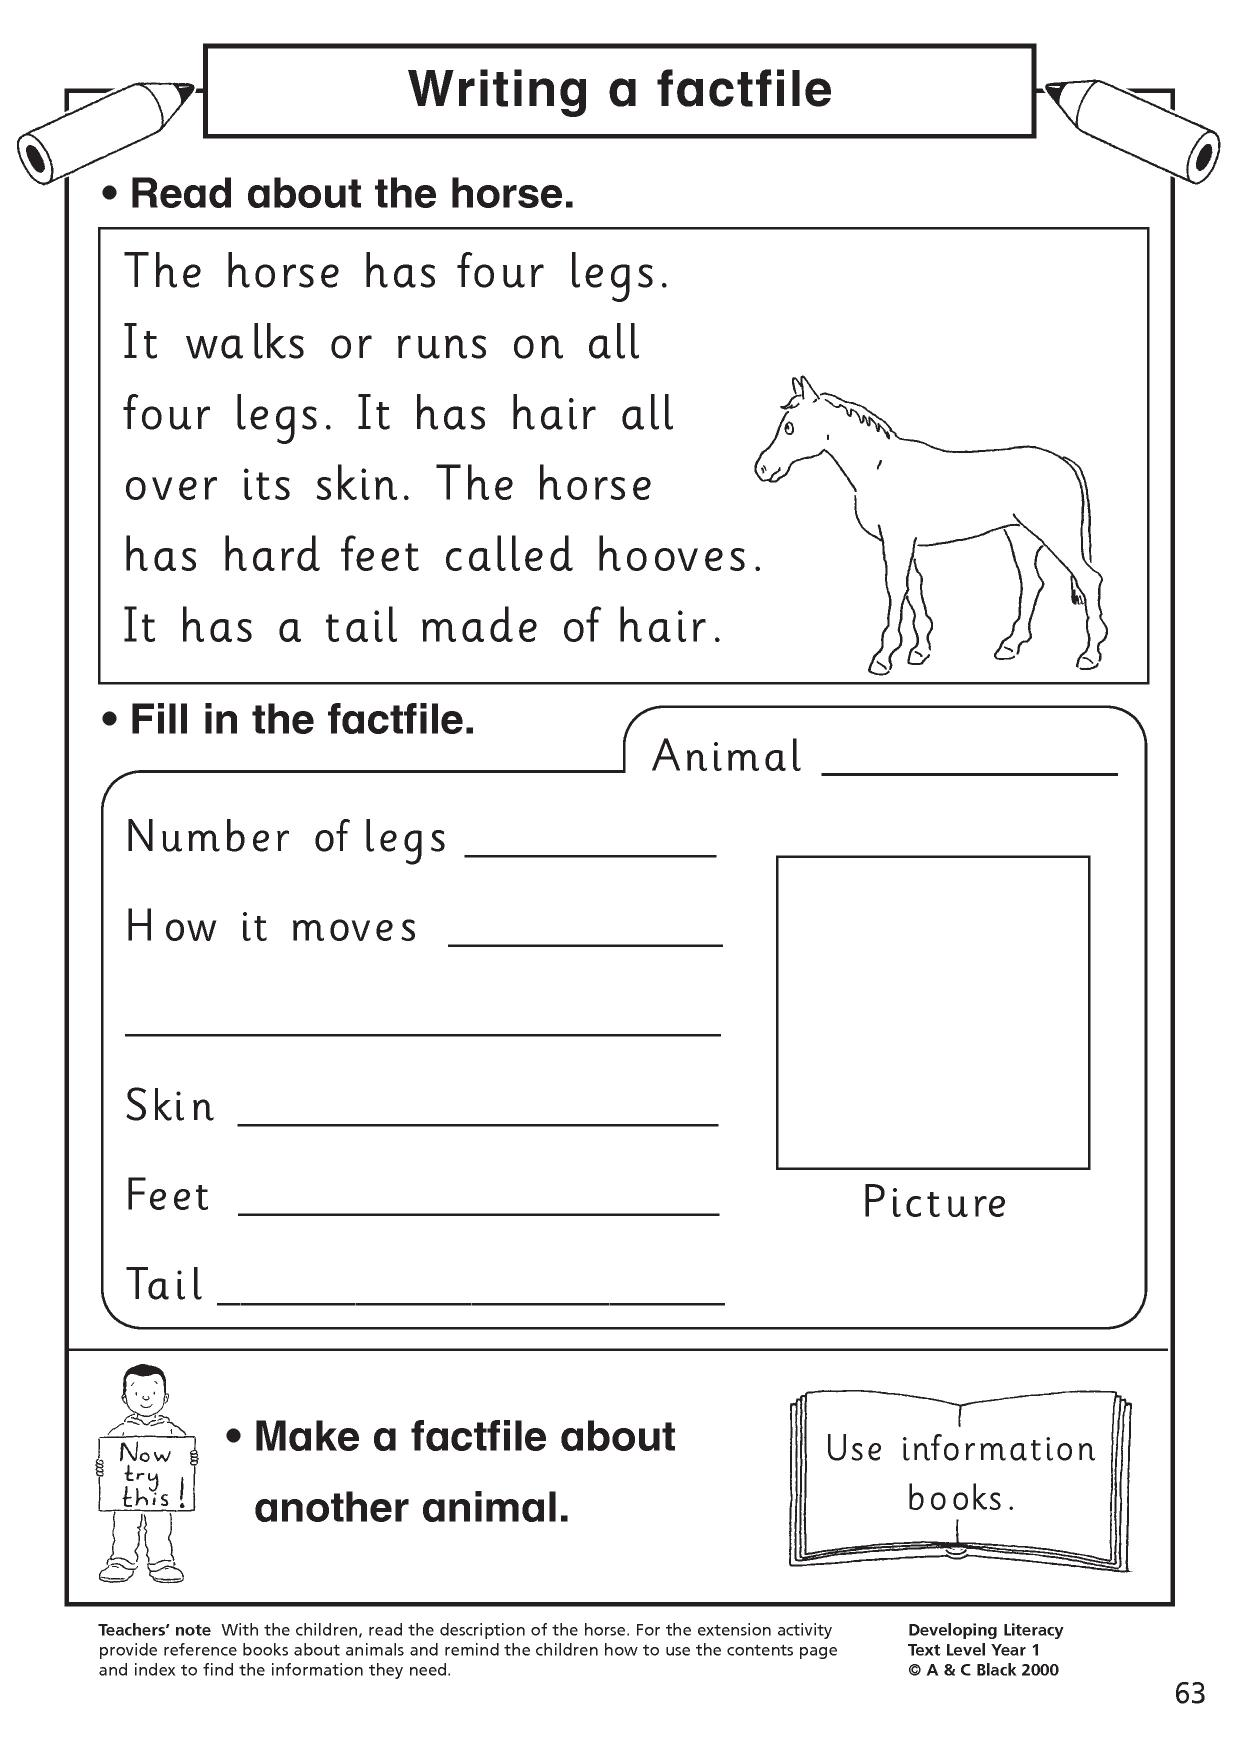 Sat may prompts examples essay 2011 and